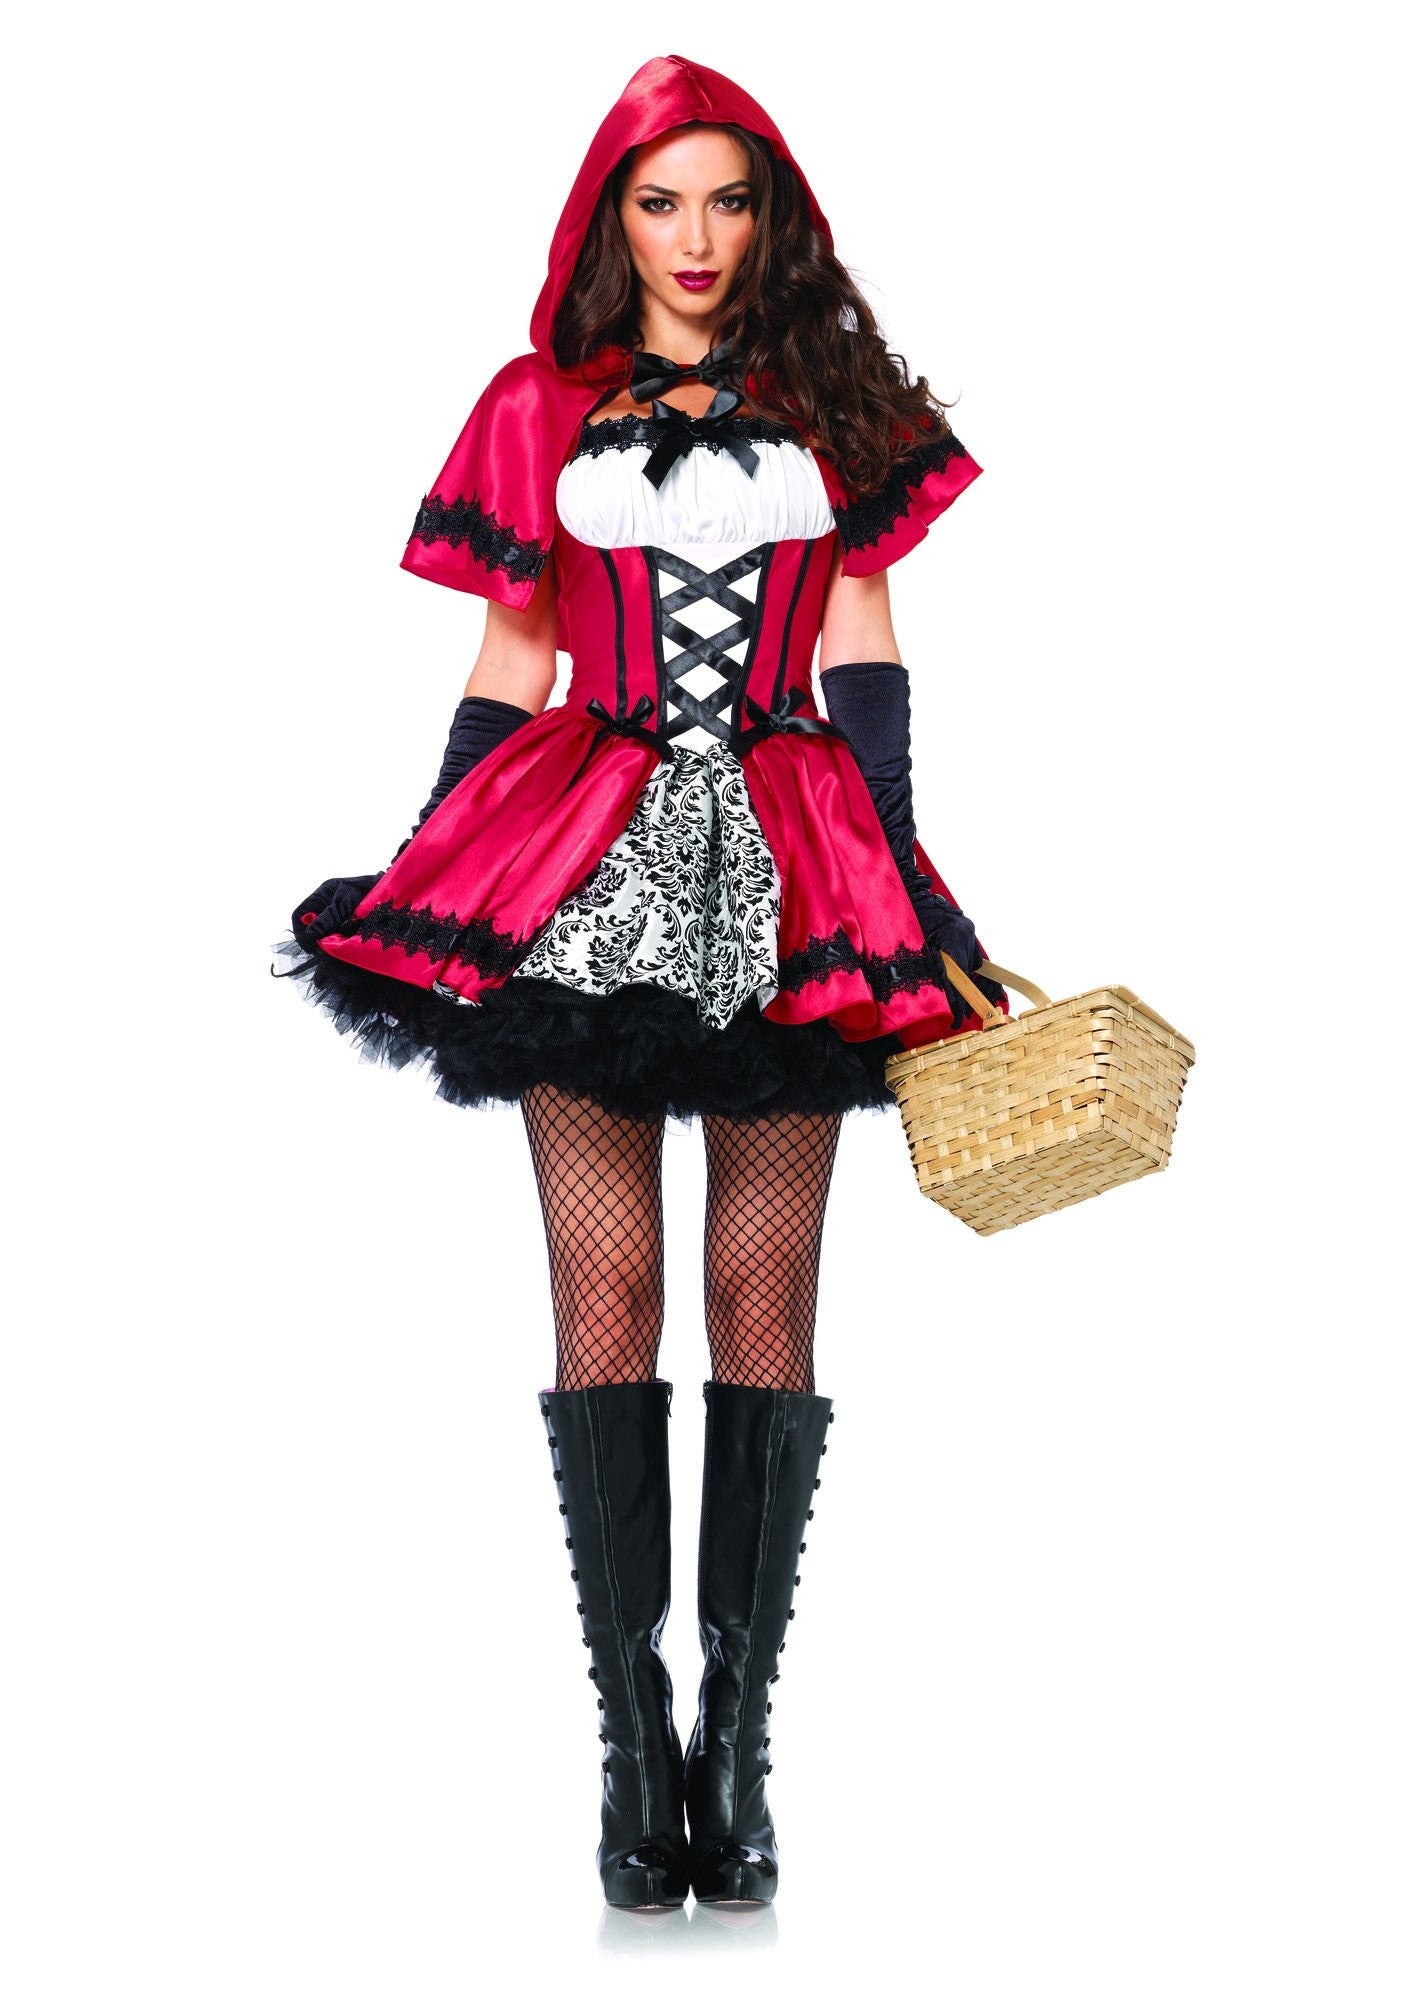 Costume - Gothic Red Costume - Little Red Riding Hood  sc 1 st  Stagecoach & Kearney NE Costumes - Stagecoach